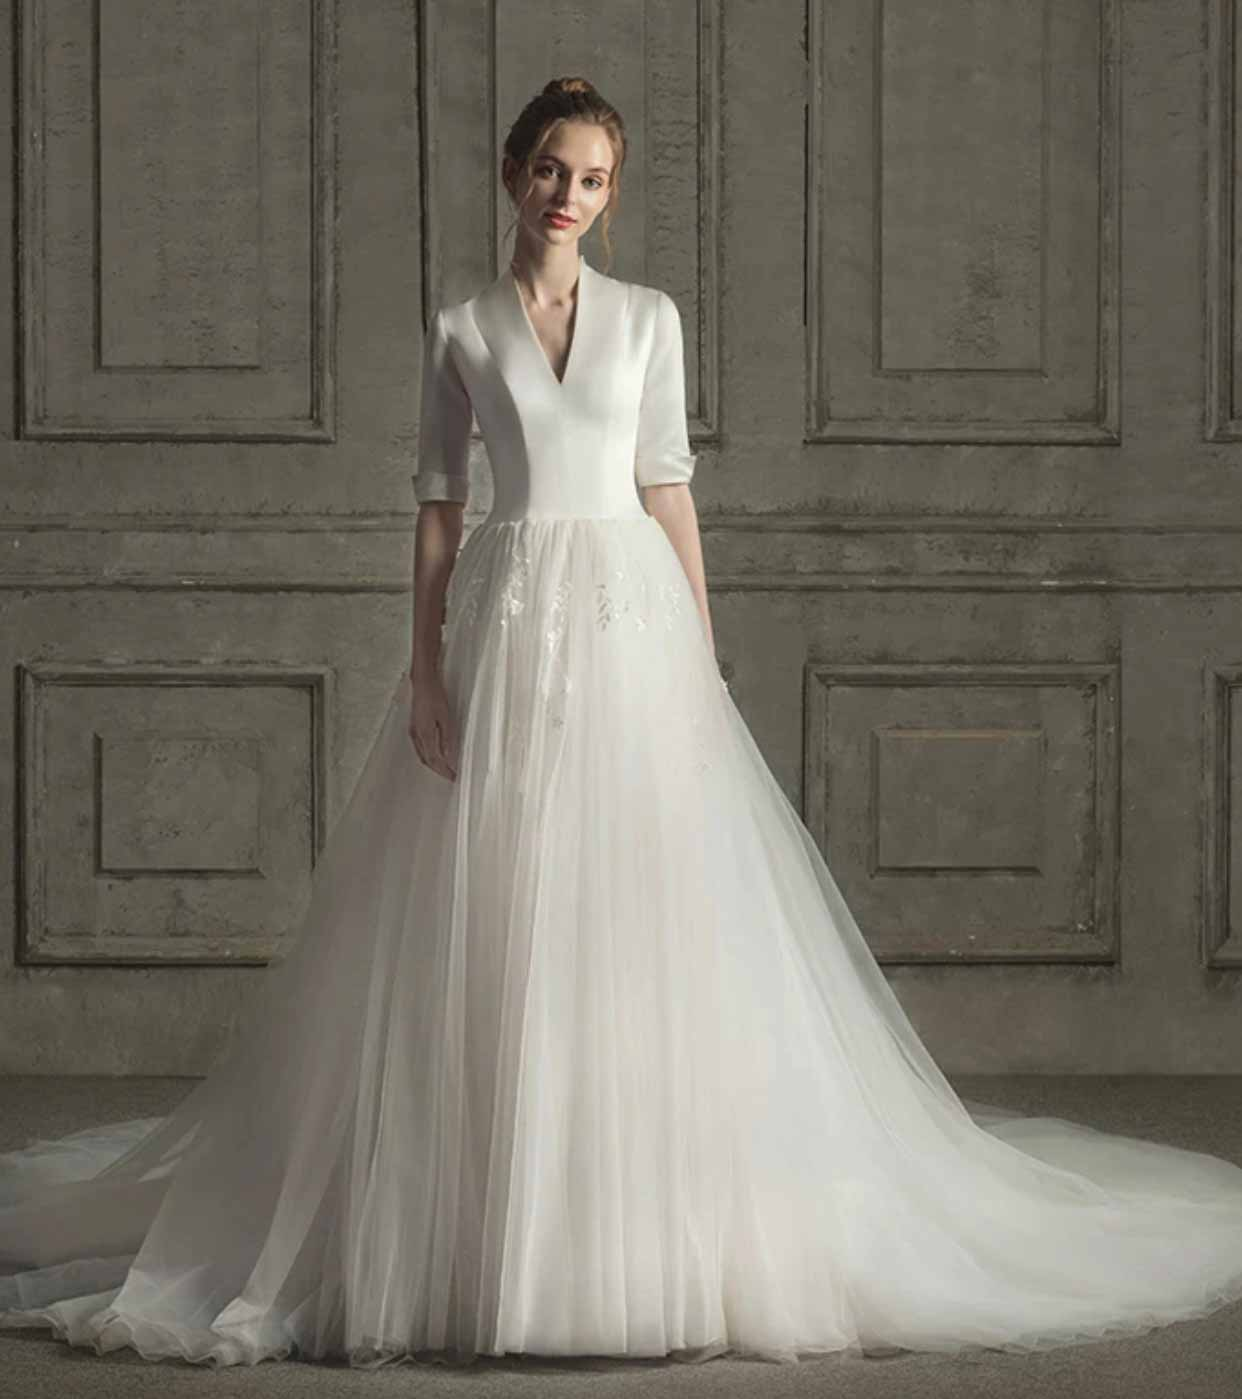 [RENT OR BUY] Custom Made Modest Satin Deep V-Neck Wedding Dress 3/4 Long Sleeve with Laced Tulle Skirt